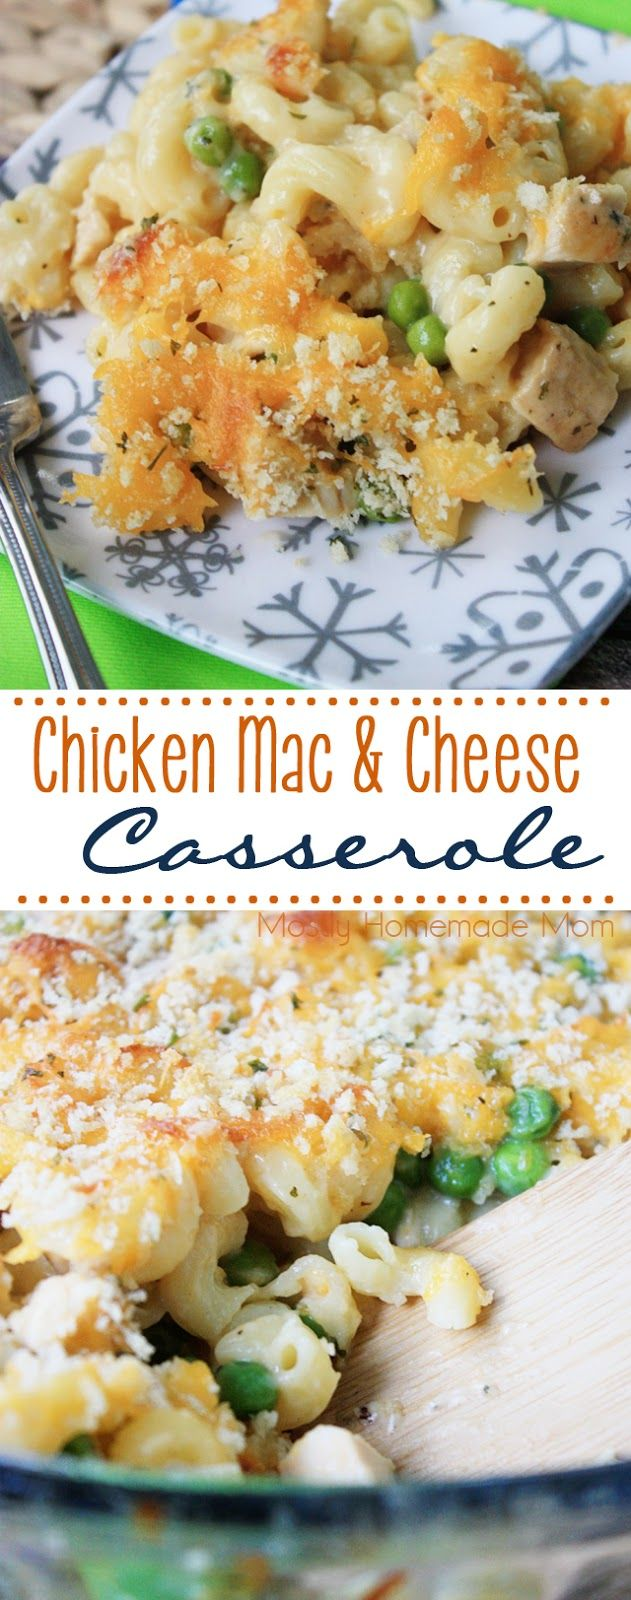 Chicken Mac & Cheese Casserole - super cheesy and delicious! Cooked chicken combined with seasonings and elbow macaroni and cheese sauce, topped with bread crumbs - perfect for a chilly weeknight! #FamilyPastaTime #ad